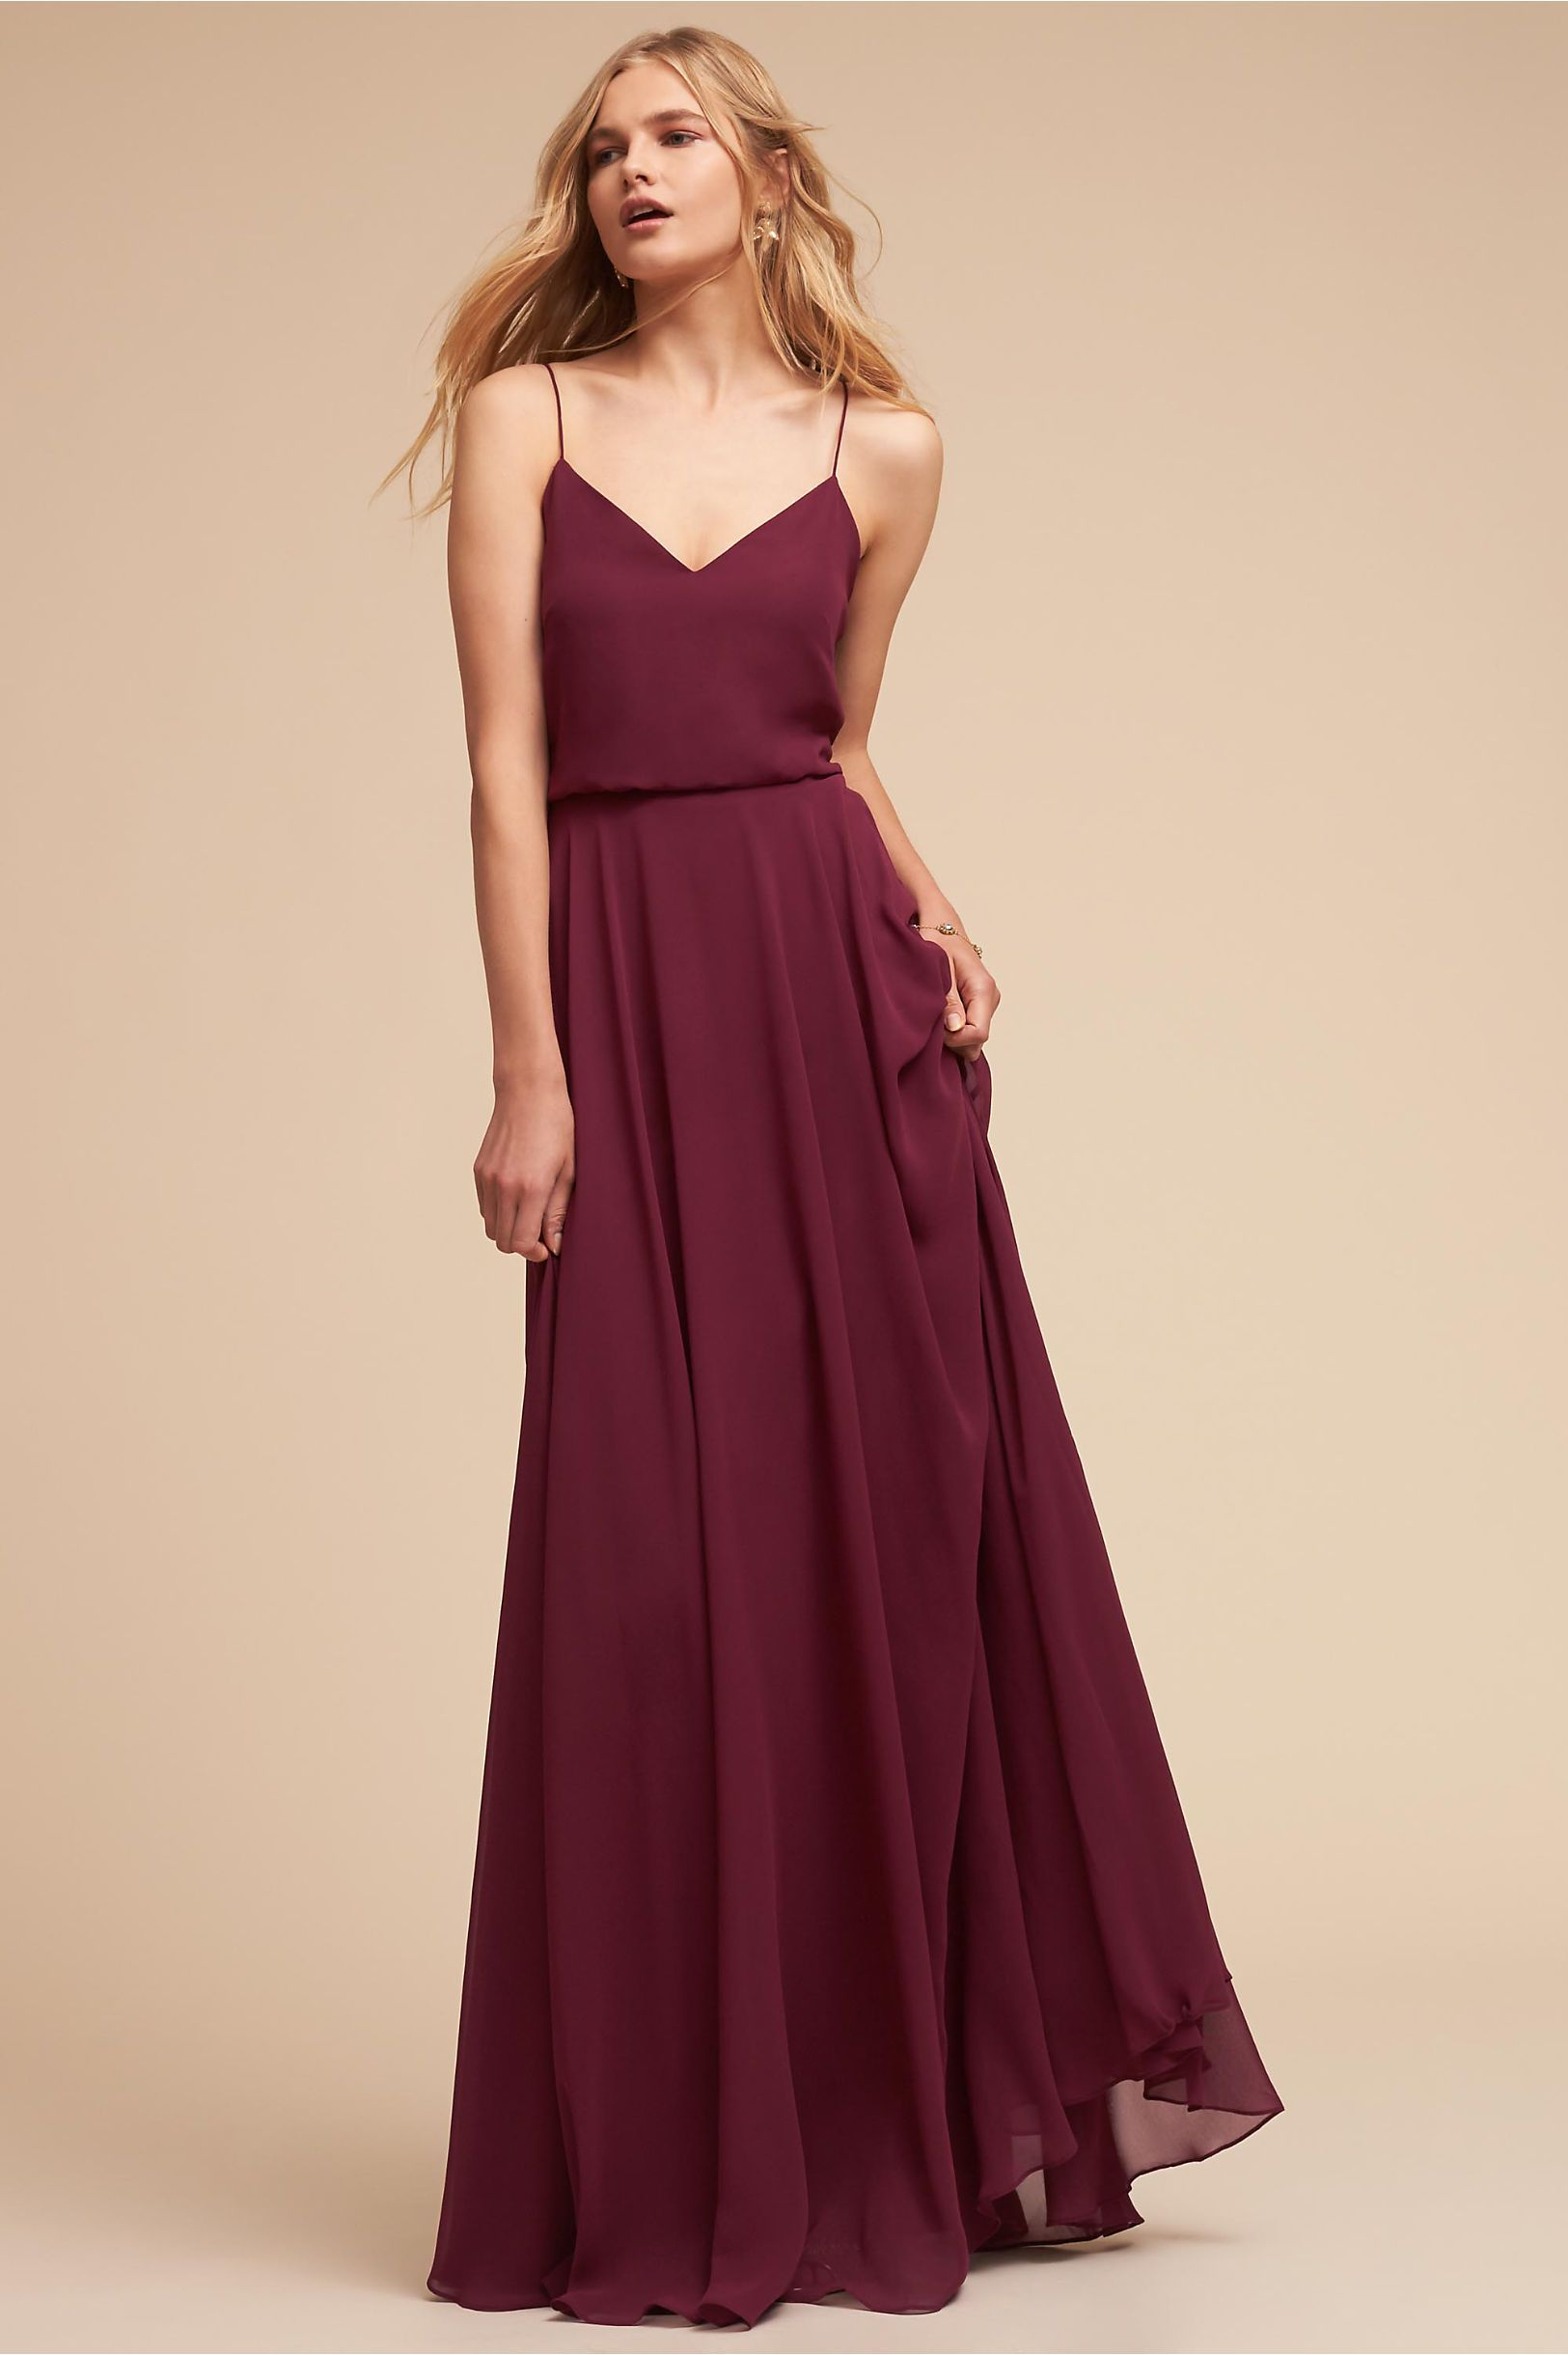 7c7030447e3 Inesse Dress Cinnamon Rose in Bridal Party